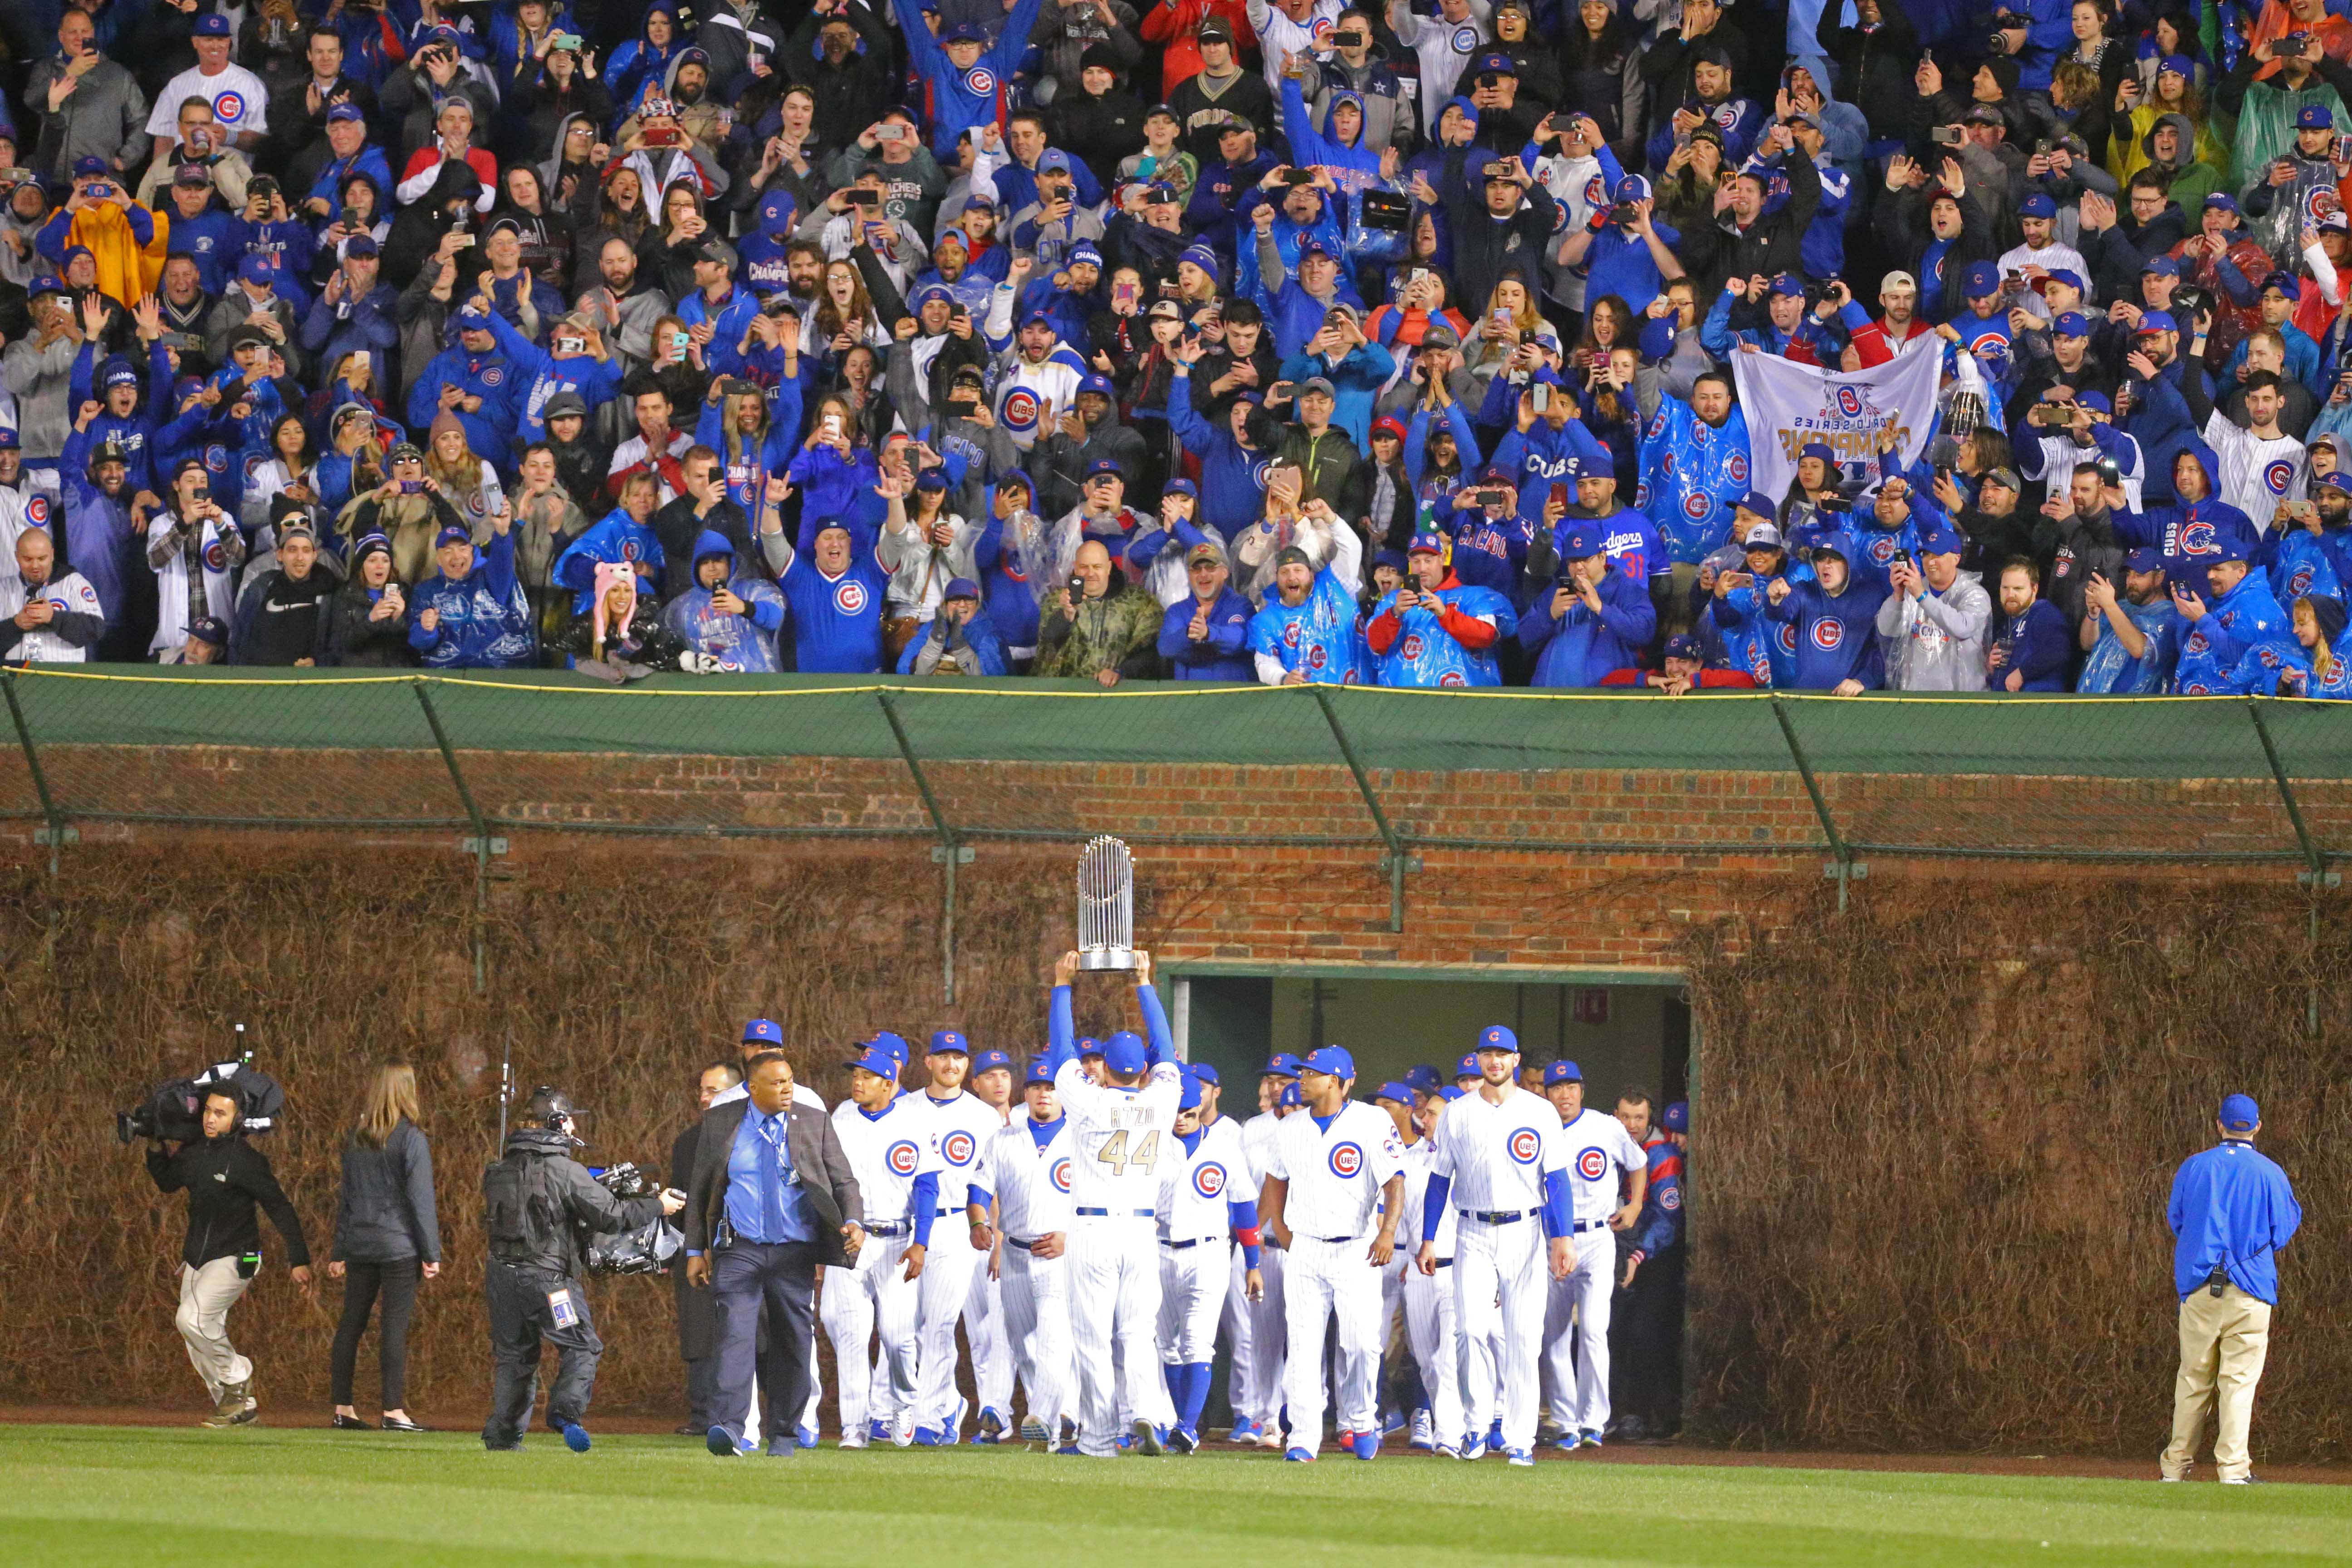 10005393-mlb-los-angeles-dodgers-at-chicago-cubs